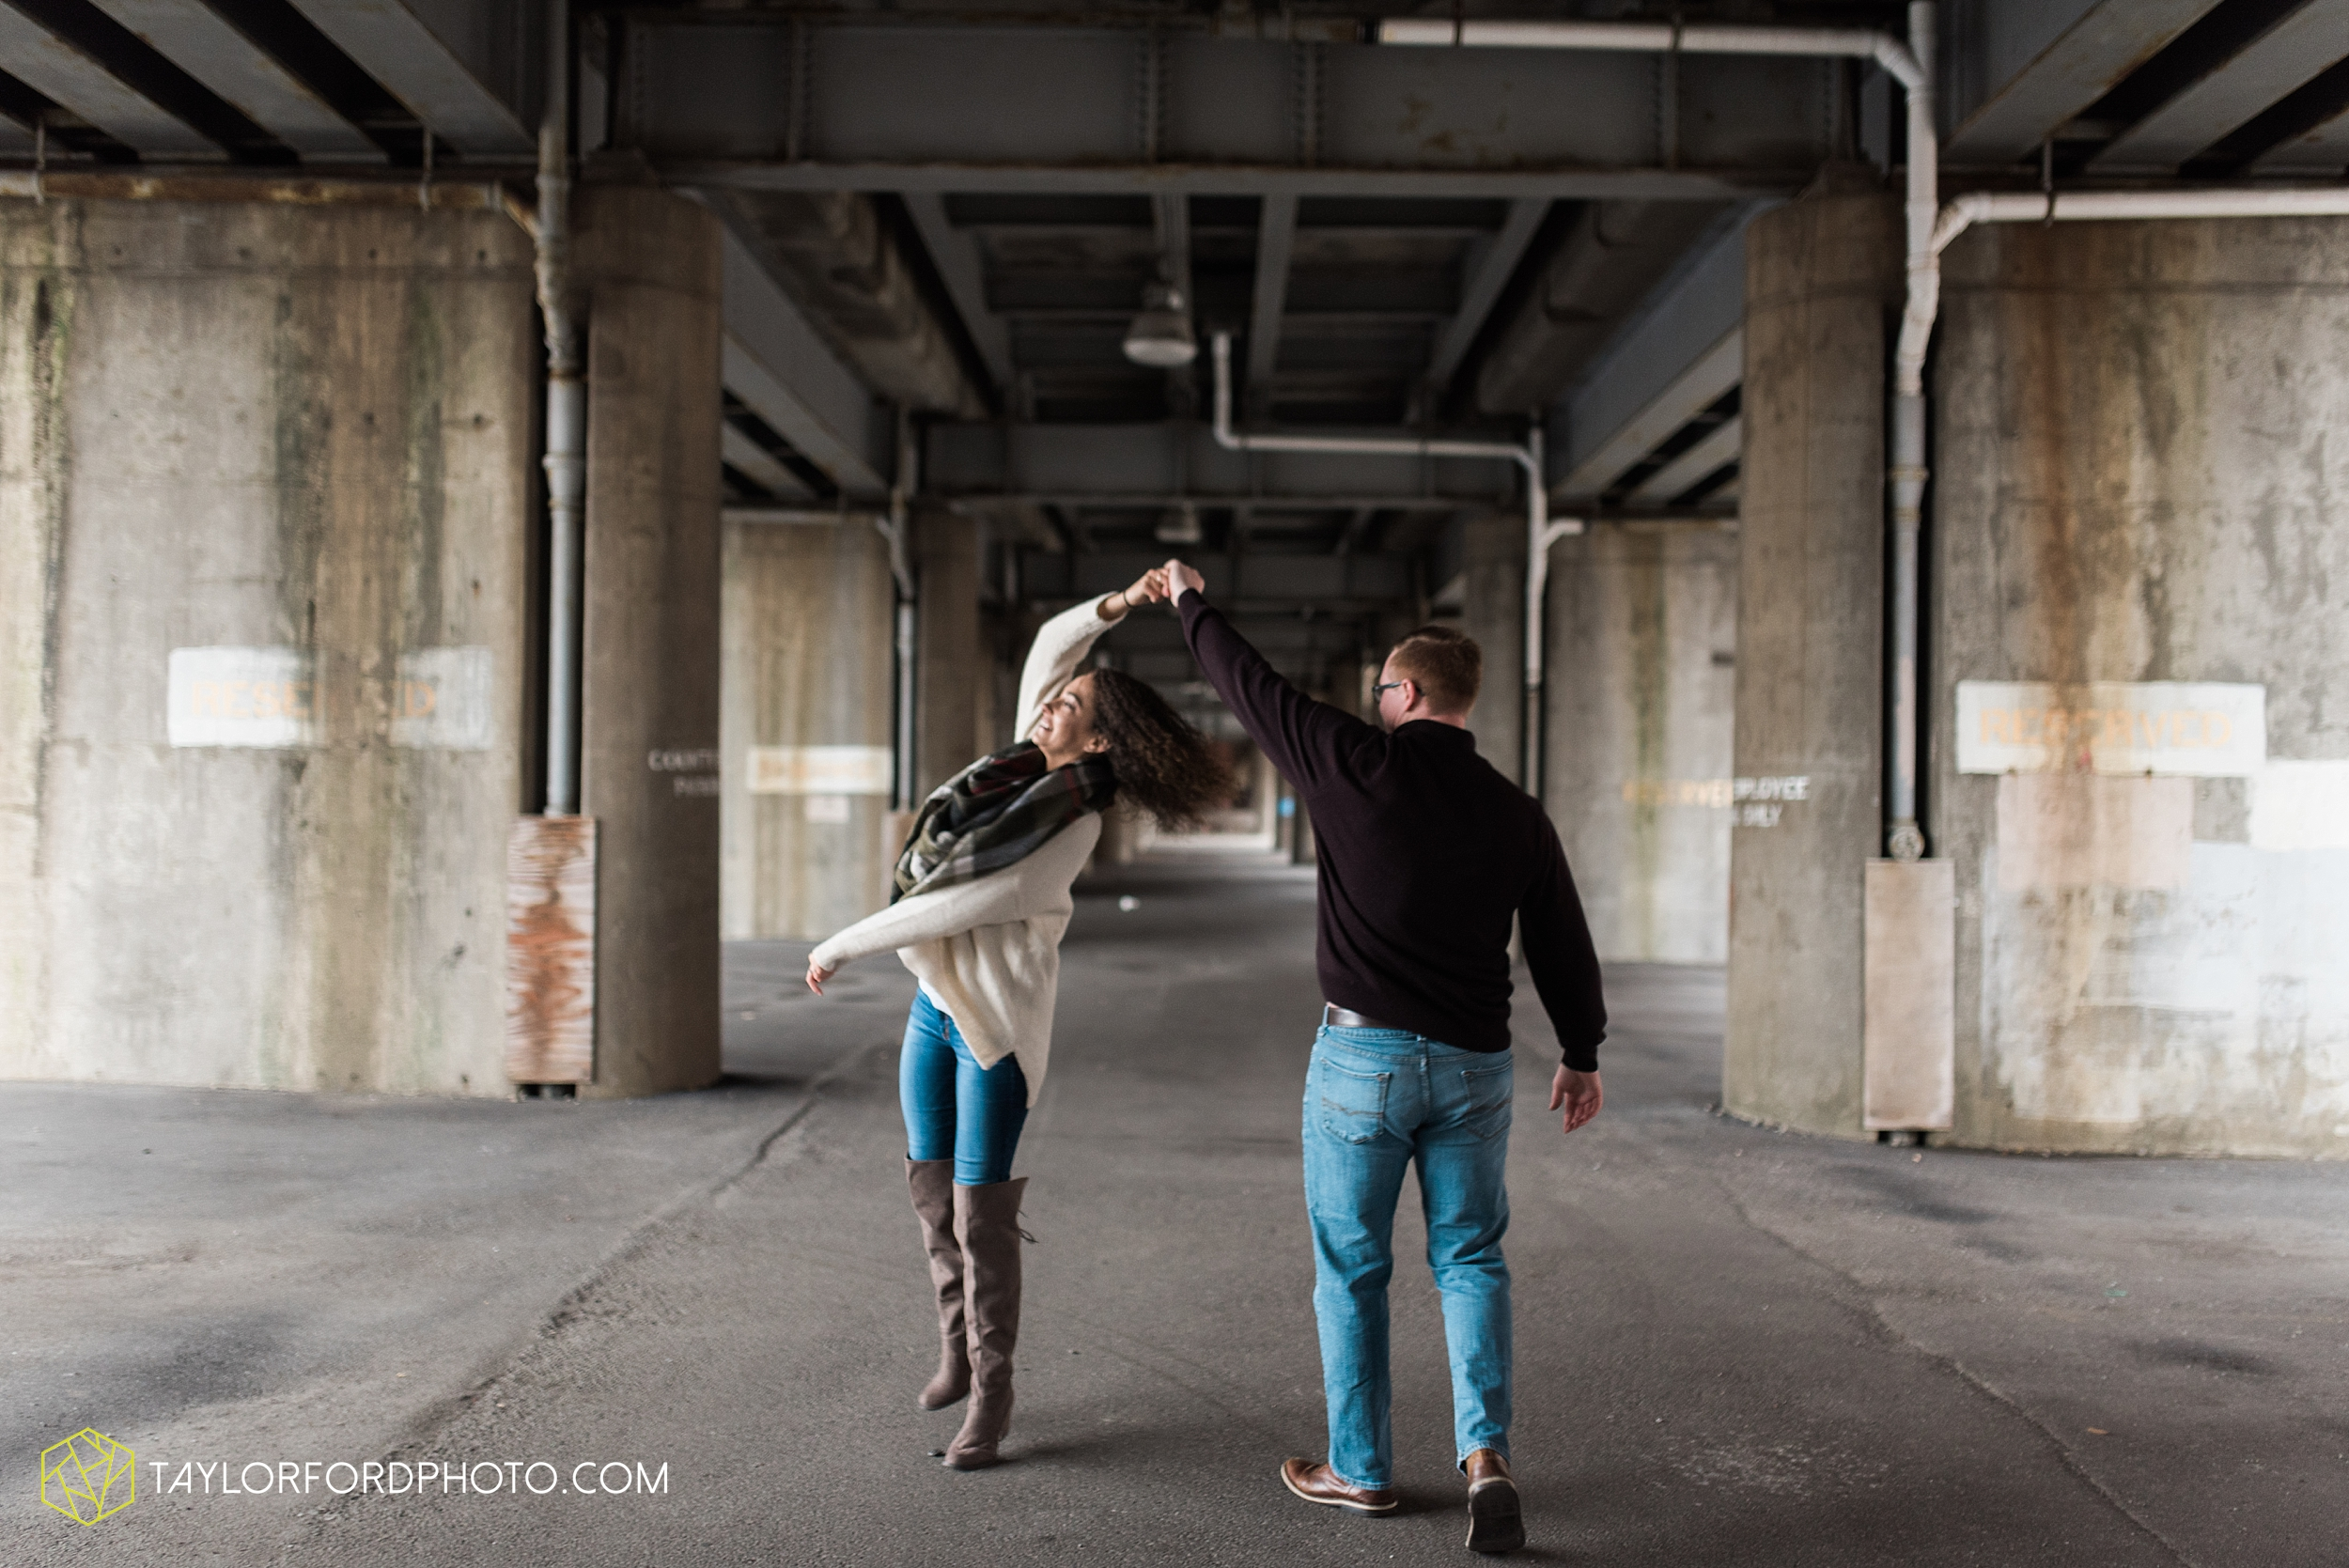 fort-wayne-indiana-engagement-photographer-rainy-day-session-Taylor-Ford-Photography_5000.jpg